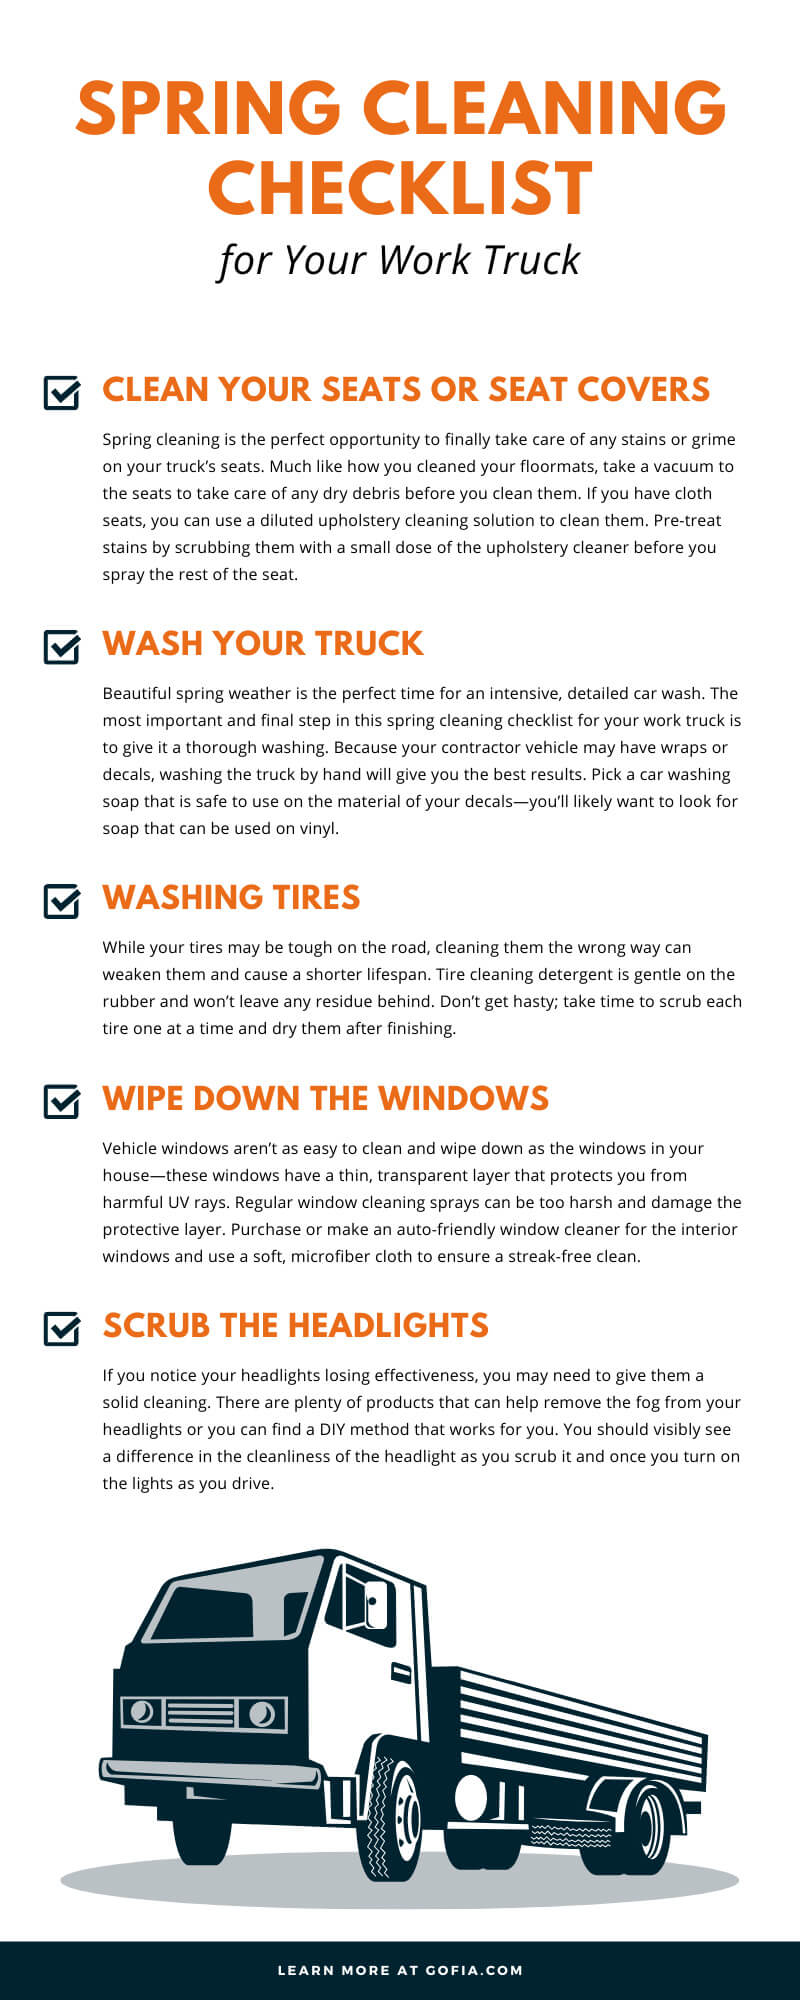 Spring Cleaning Checklist for Your Work Truck